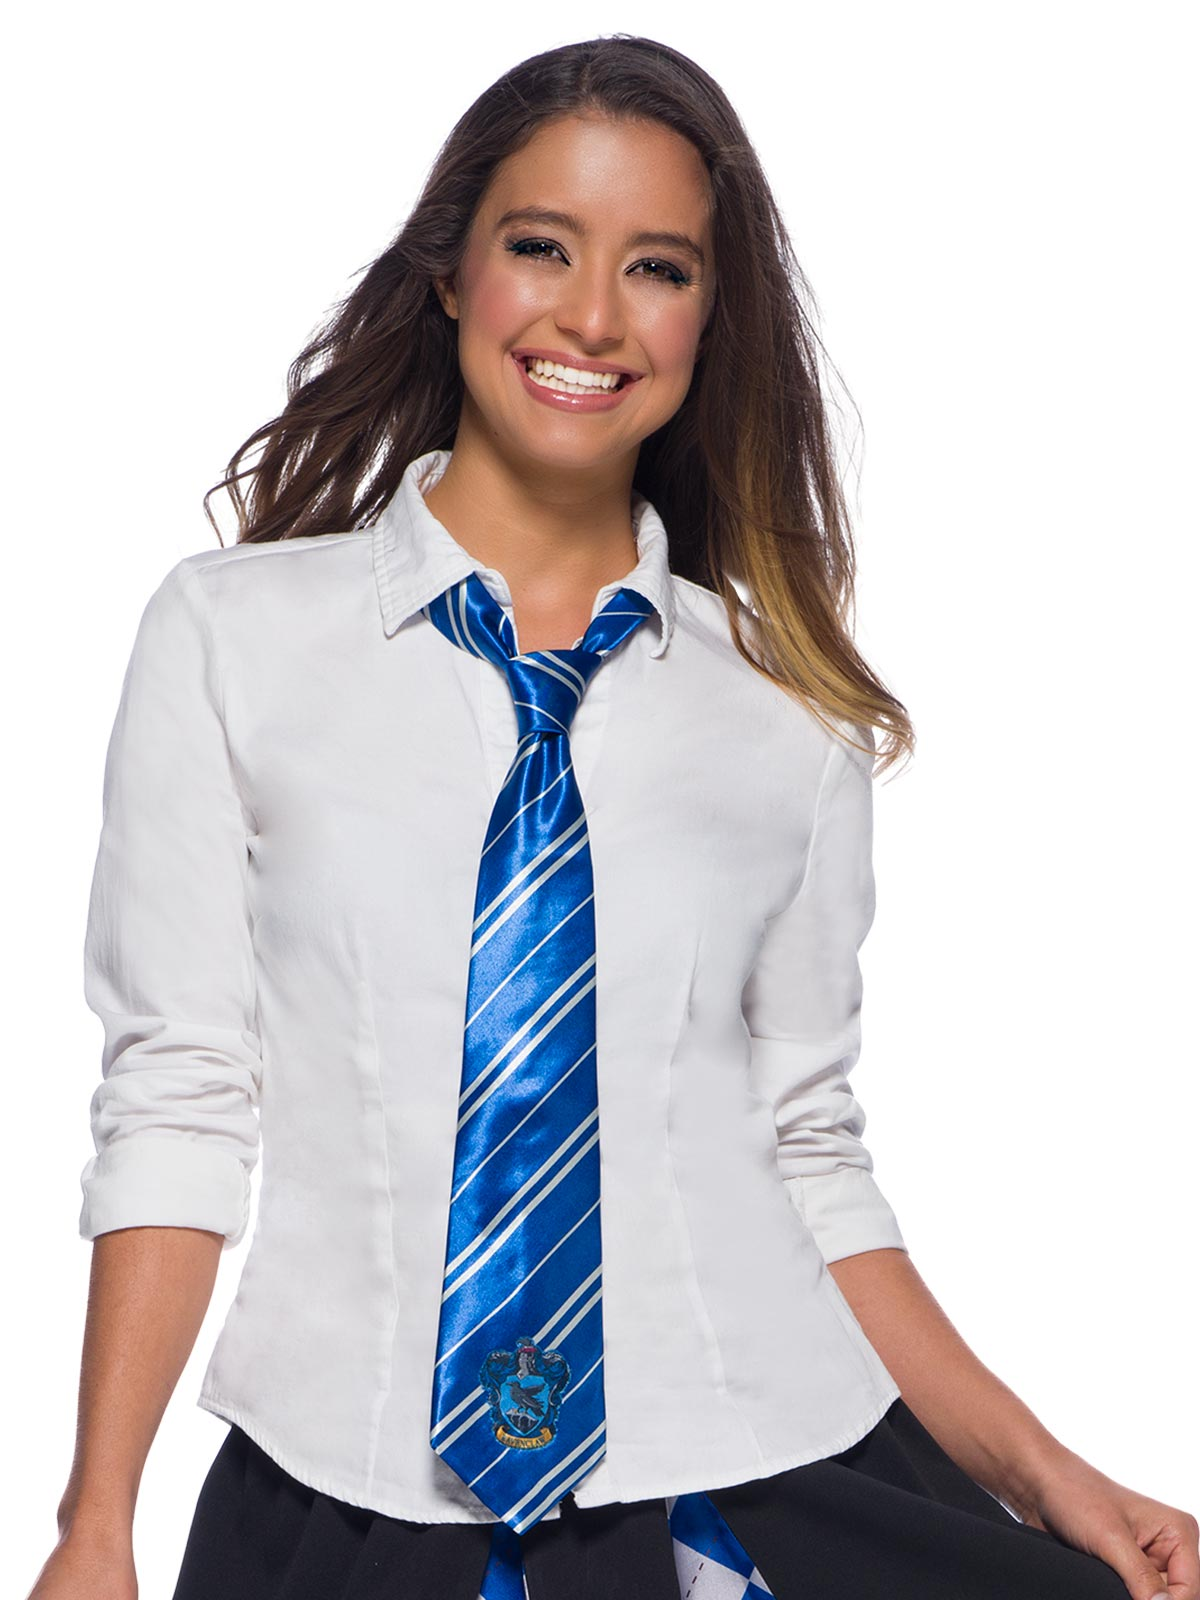 Harry Potter Ravenclaw House Tie - Buy Online Only